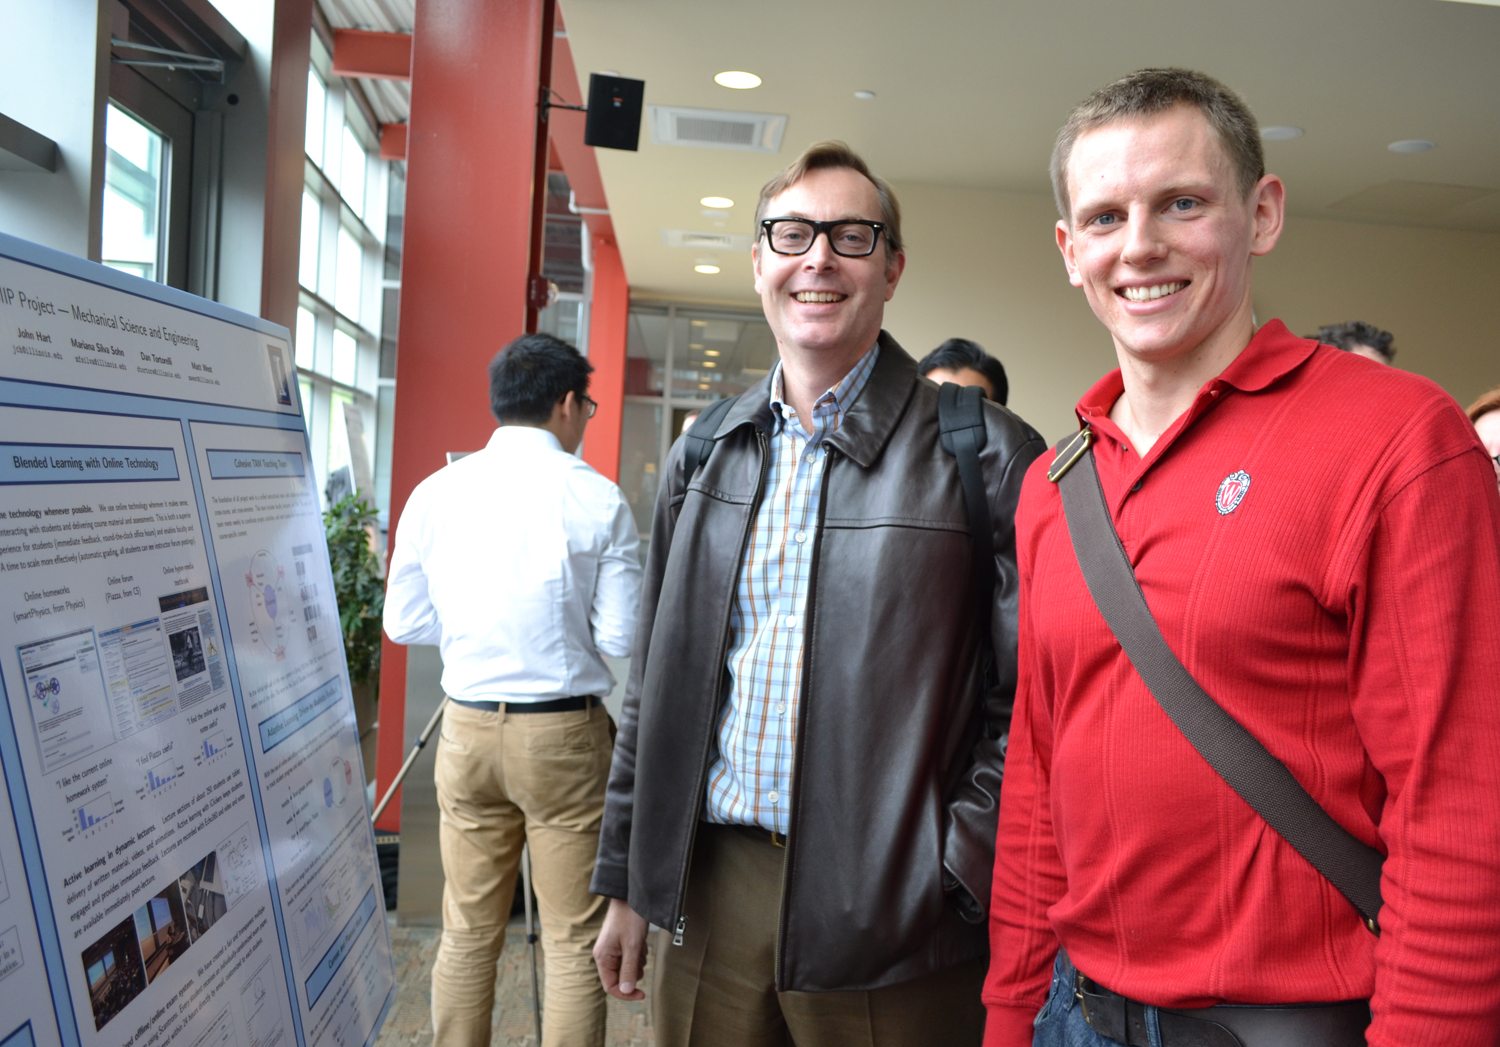 MechSE Professor Geir Dullerud and grad student Aaron Anderson from the TAM SIIP team.